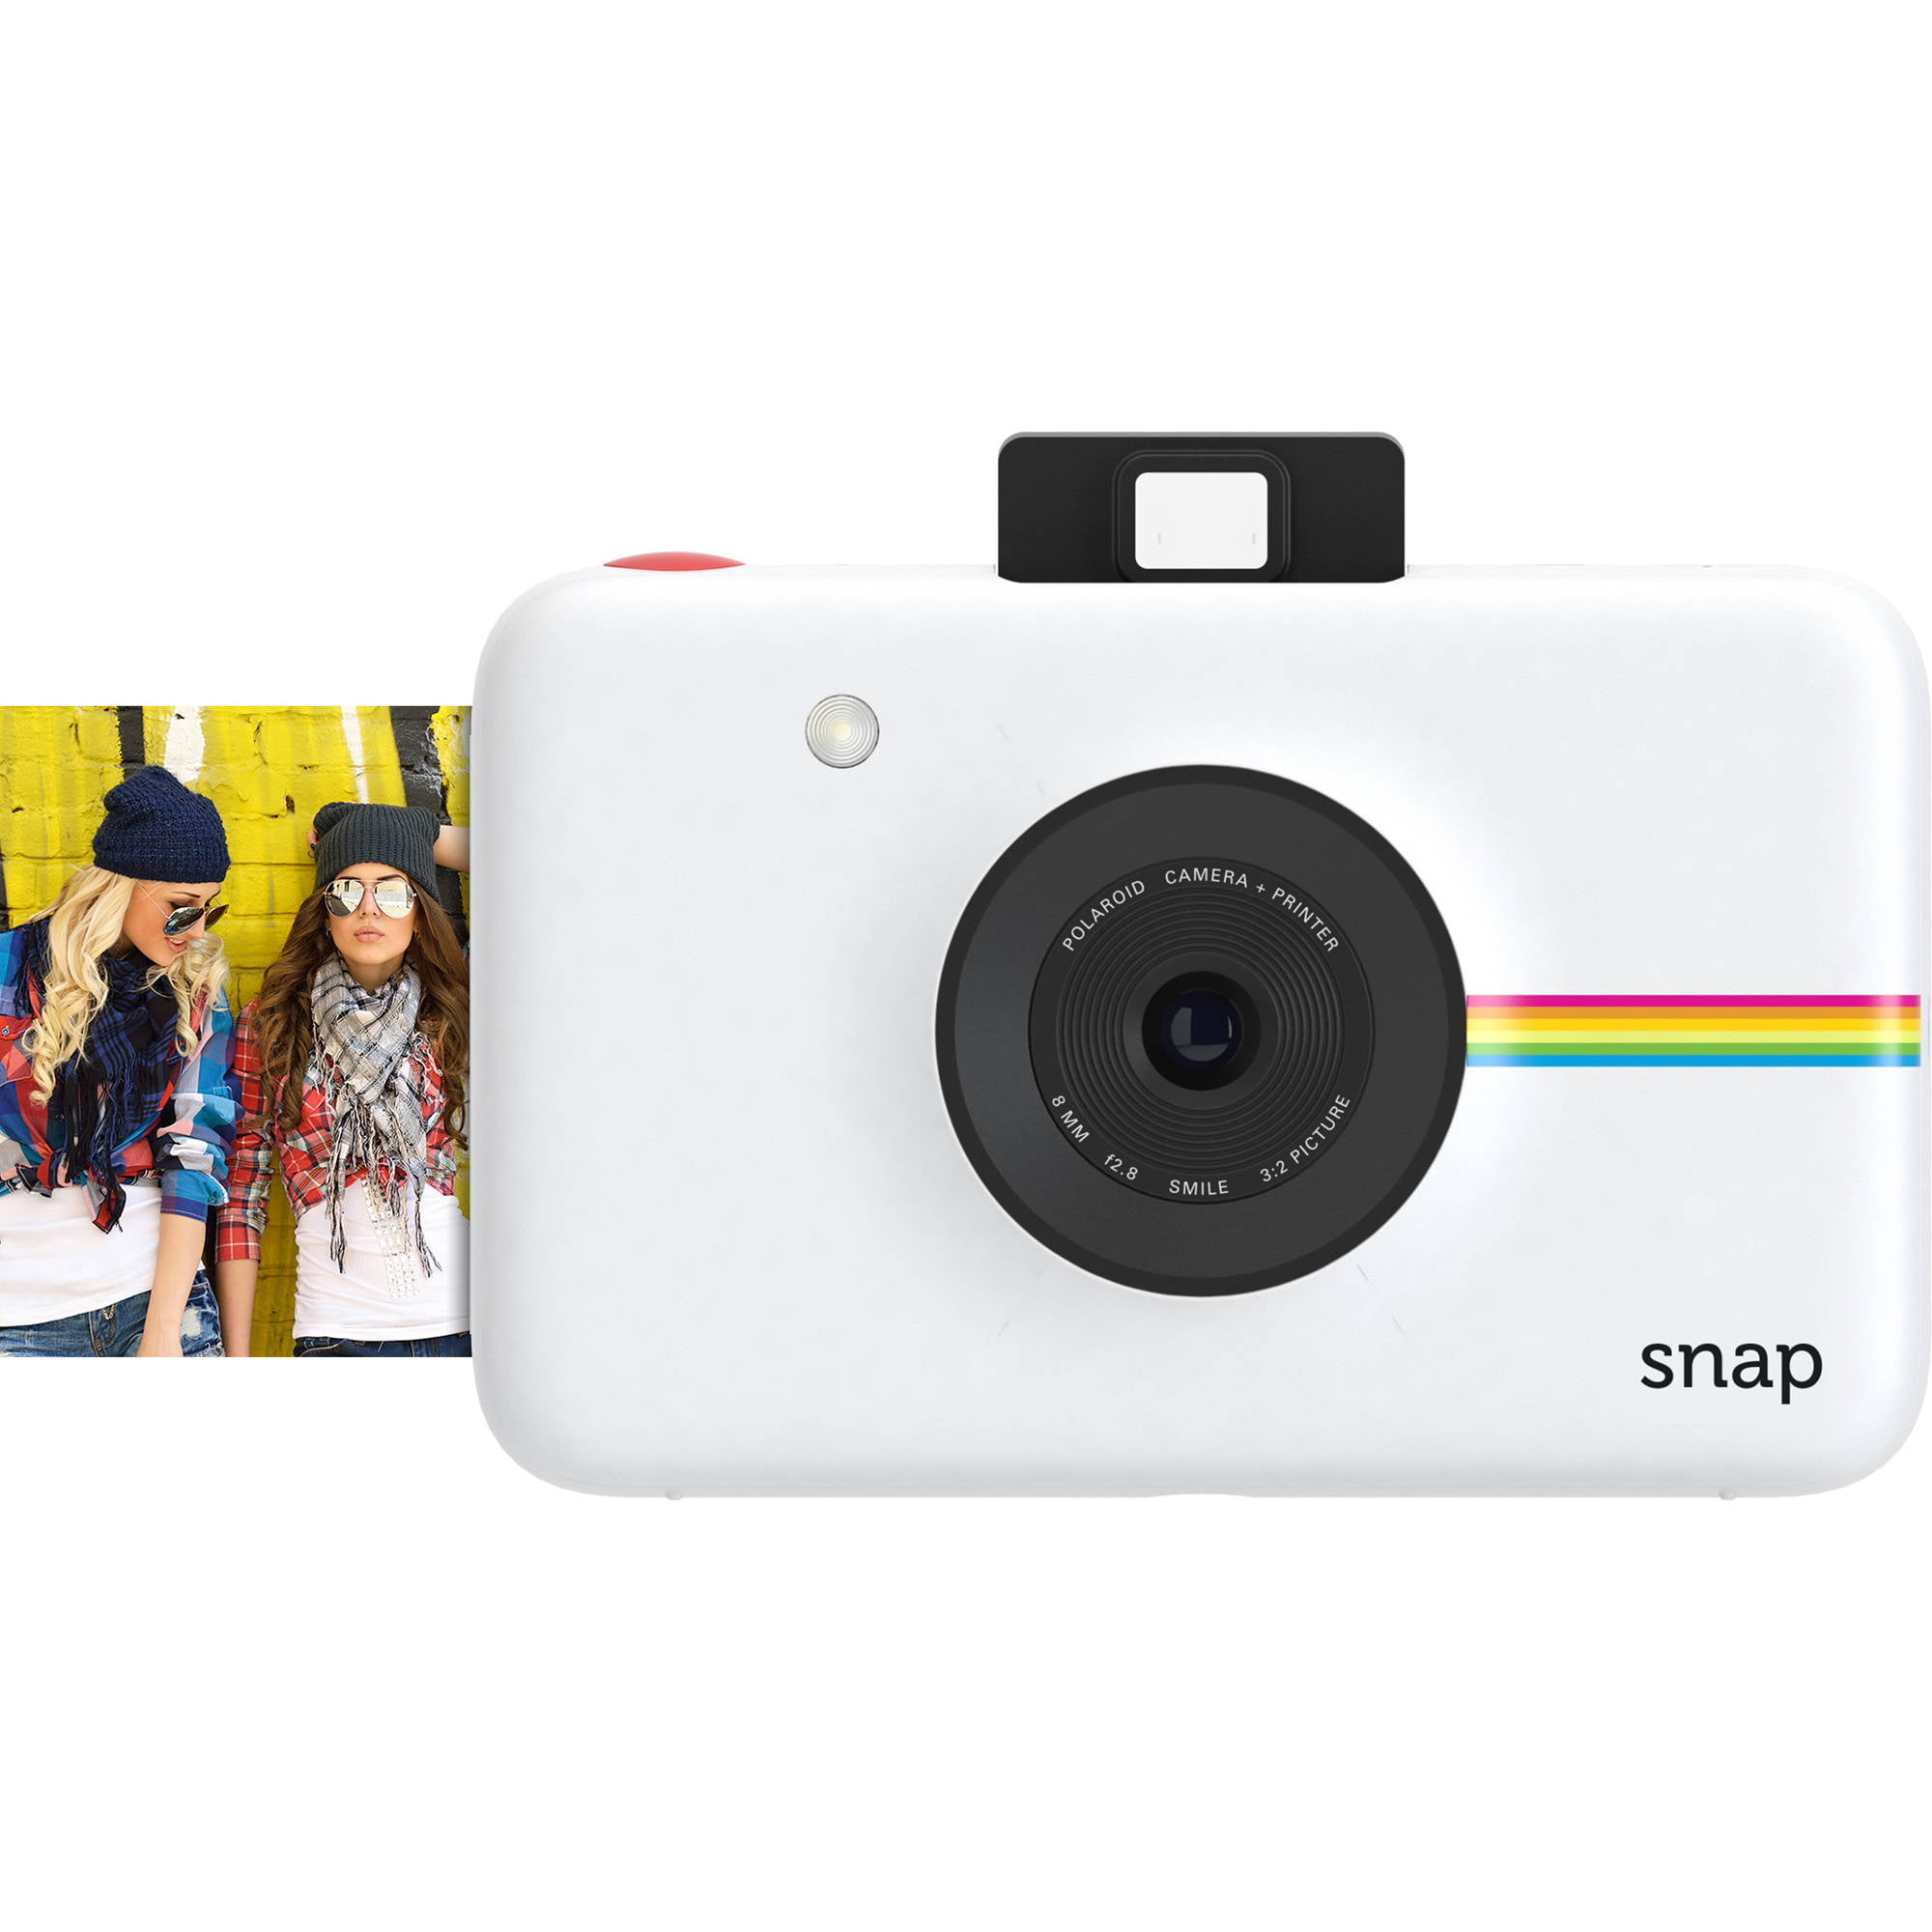 Camera Cameras For Sale At Walmart polaroid snap instant digital camera walmart com